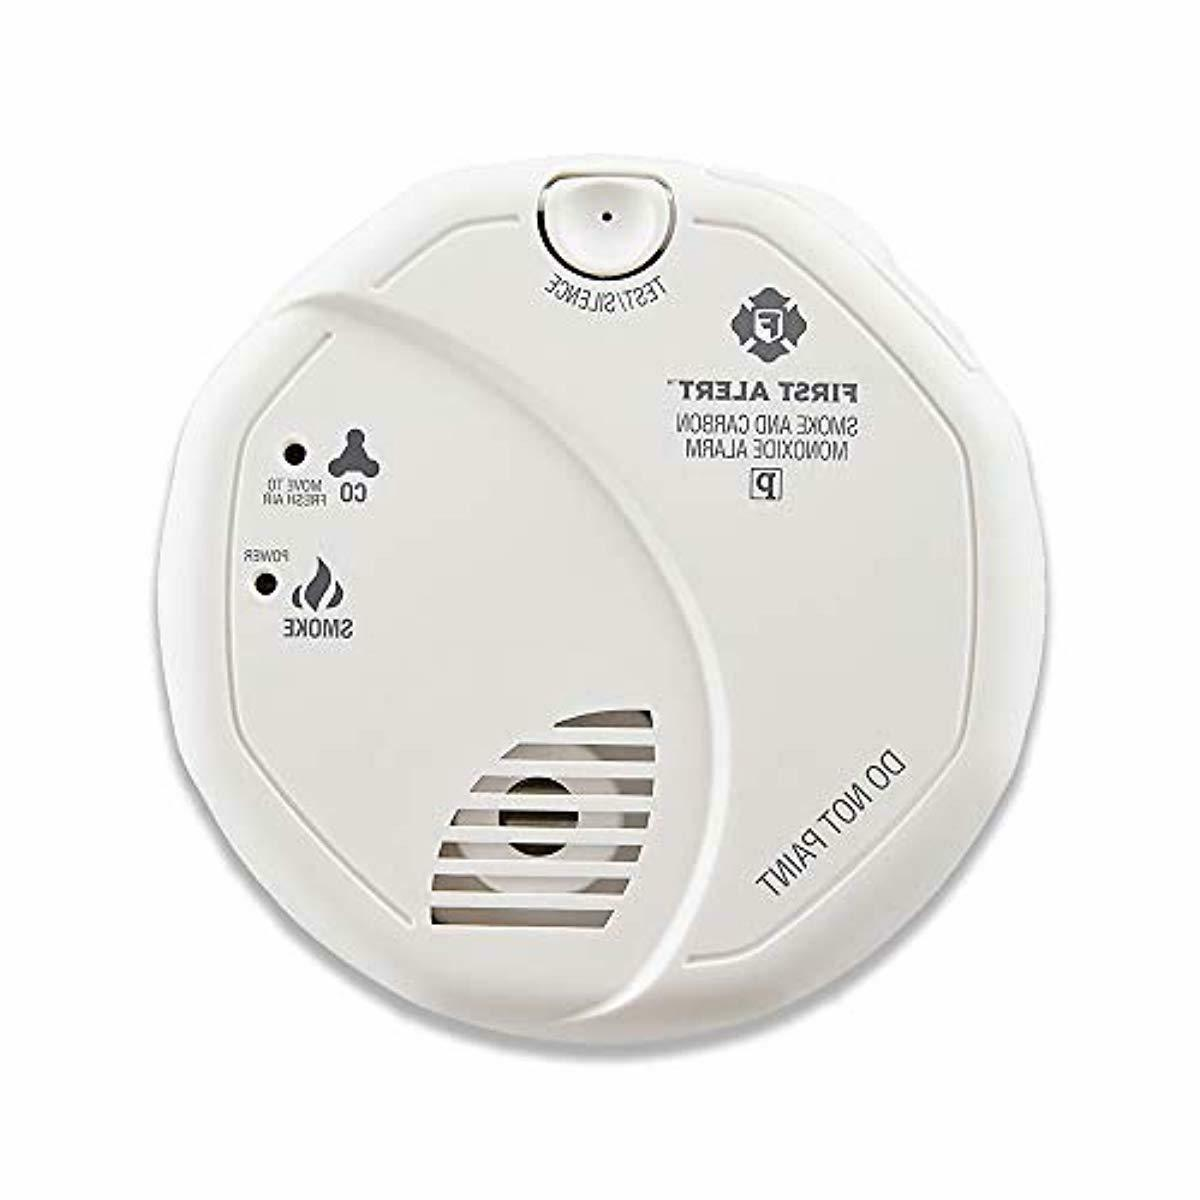 First Smoke And Carbon Monoxide Detector